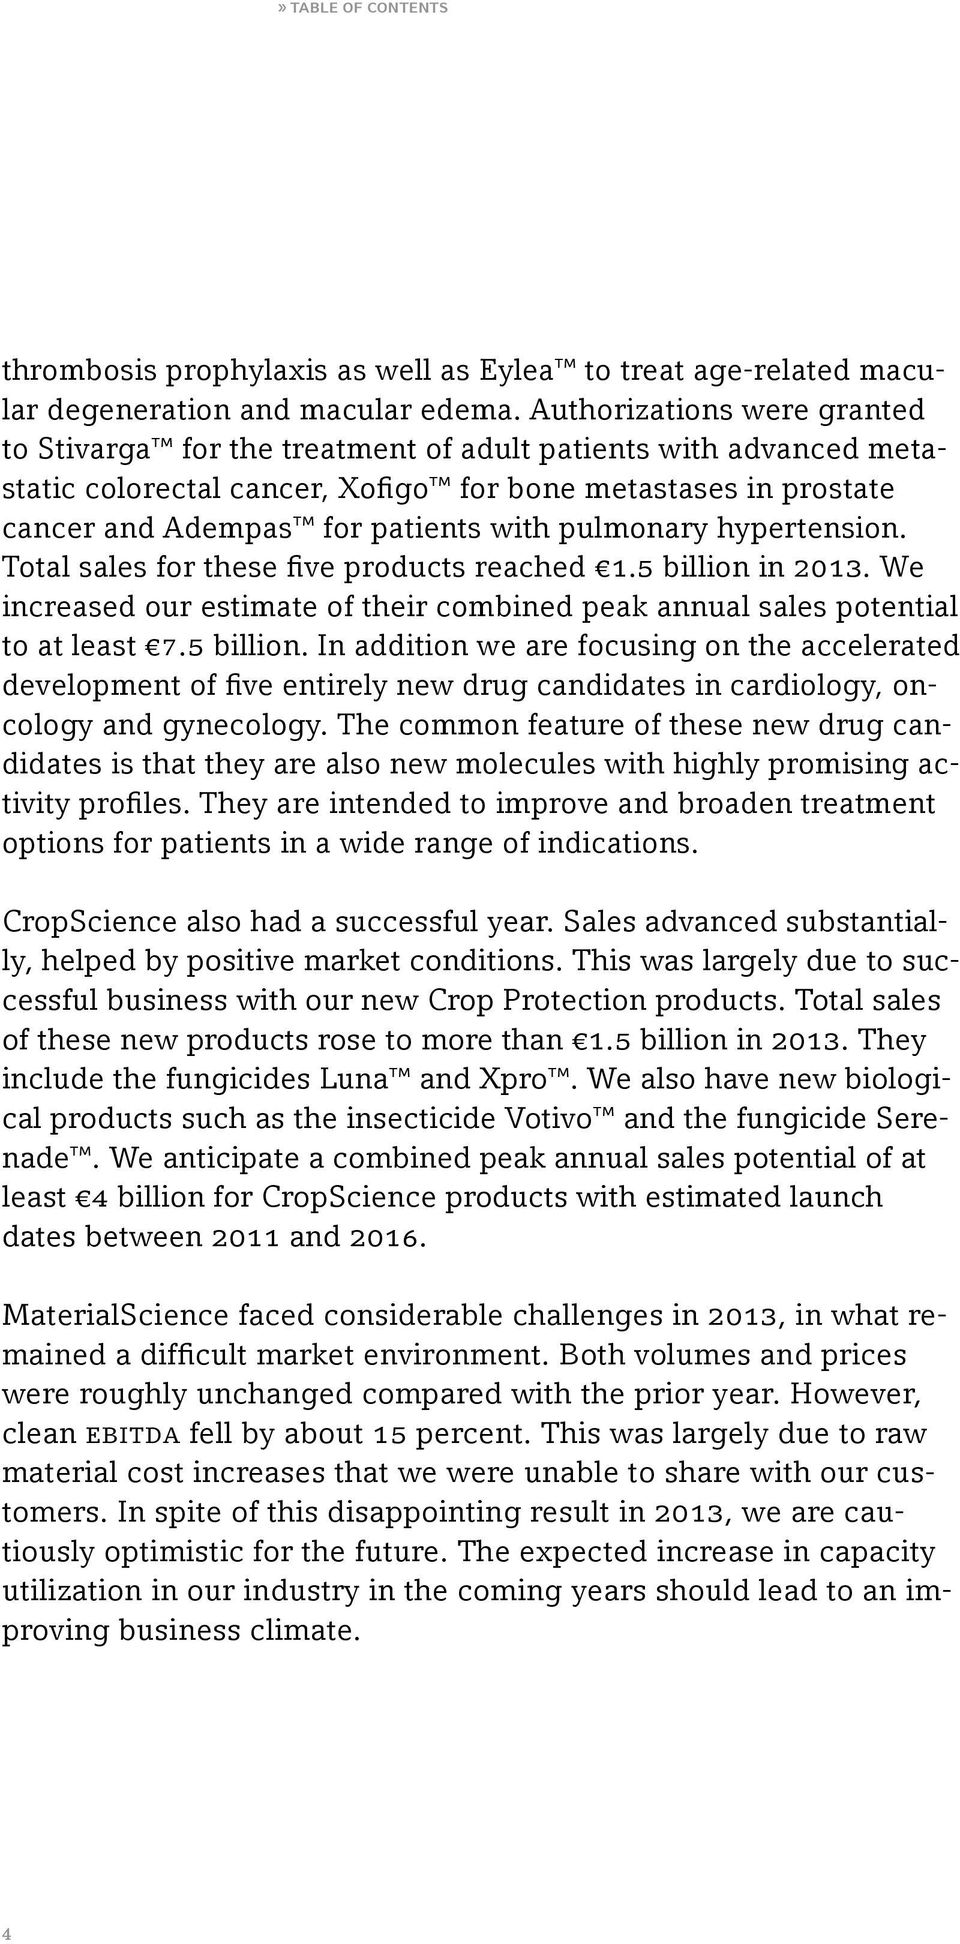 pulmonary hypertension. Total sales for these five products reached 1.5 billion